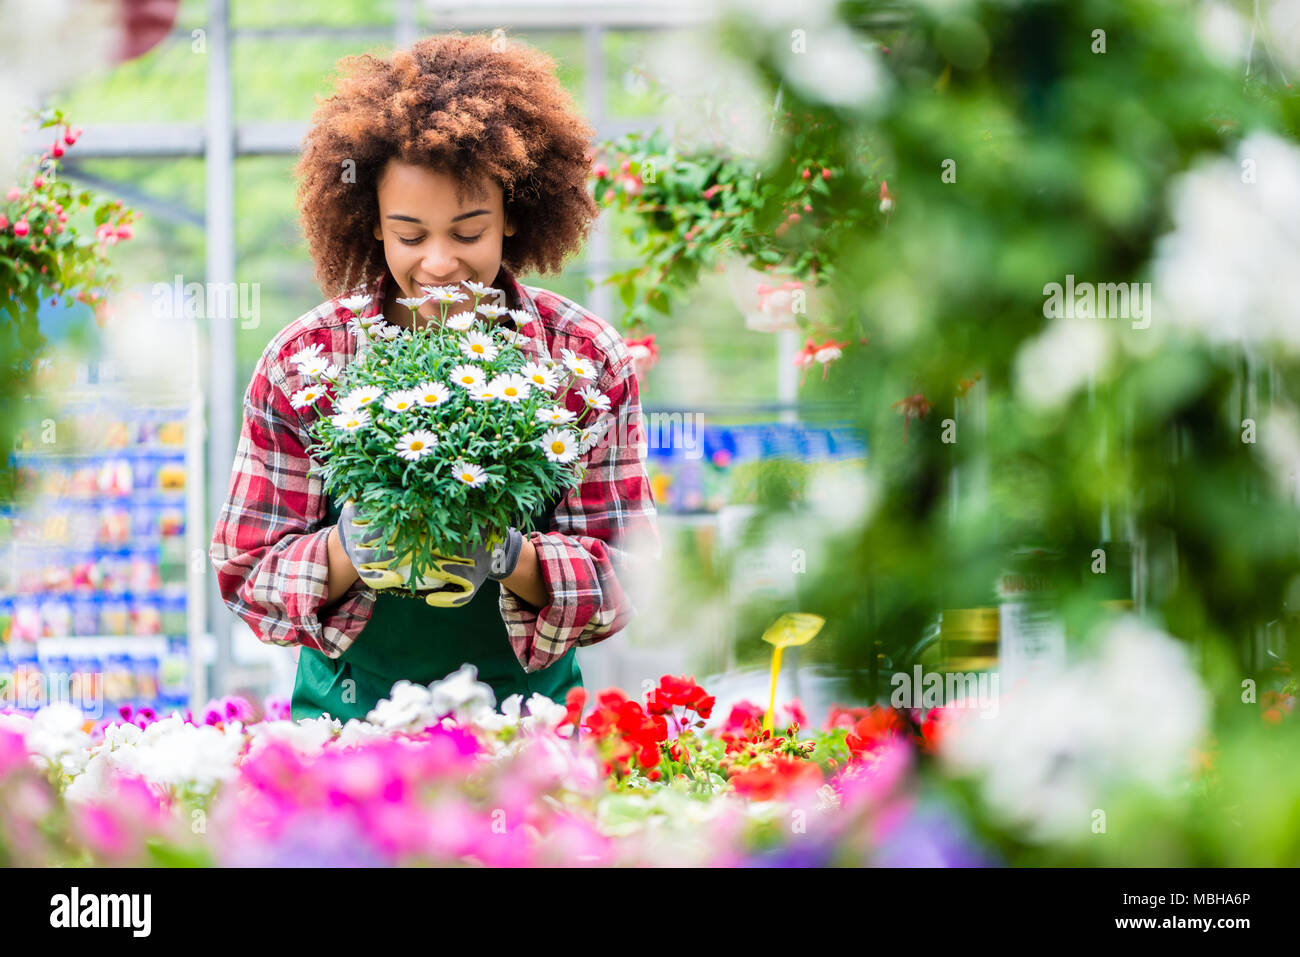 Florist Smiling While Holding A Beautiful Potted Daisy Flower Plant